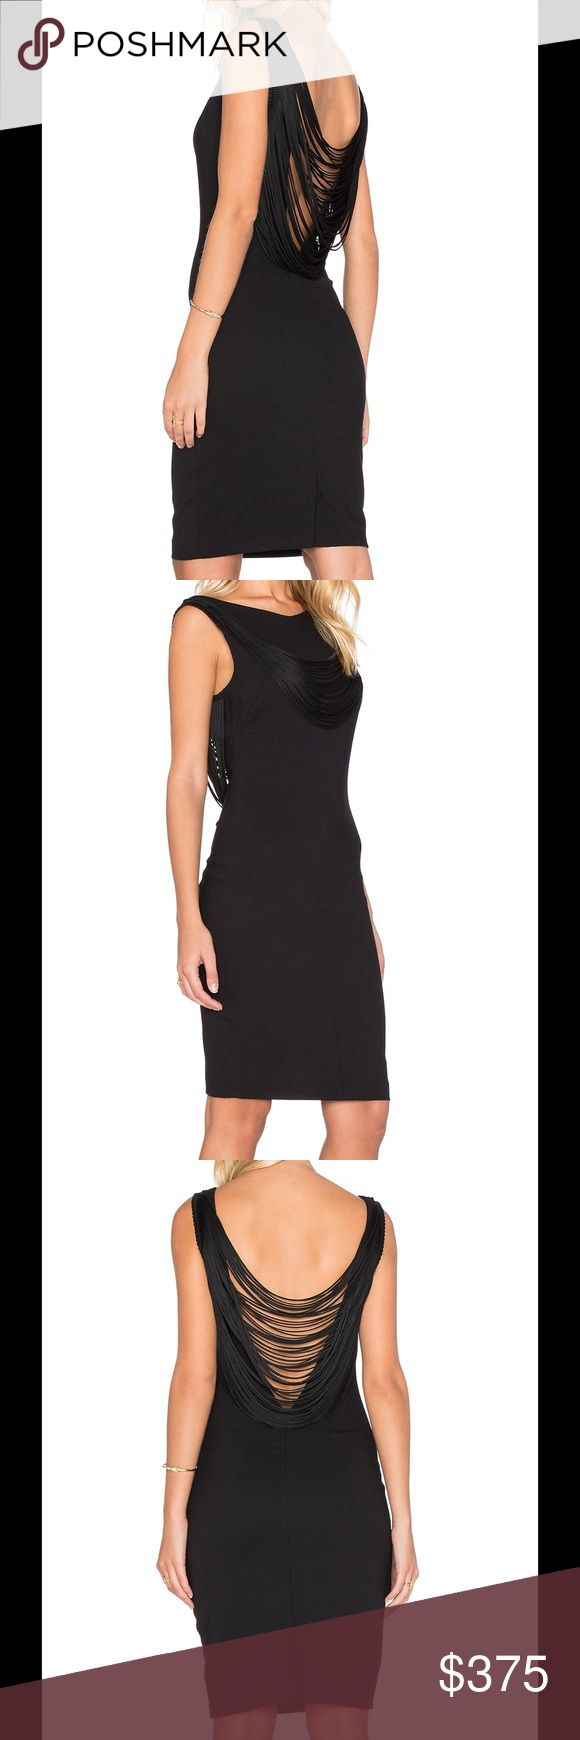 ba&sh Clapton Dress Ba&sh creates a line with a delicate mix of simple, chic designs that are modern and feminine. This make a statement little black dress features: Self: 53% poly , 43% virgin wool , 4% elastane Lining: 95% poly , 5% elastane Dry clean only Fully lined Fringe accent Hidden back zipper closure Color: Black BA&SH Dresses Mini